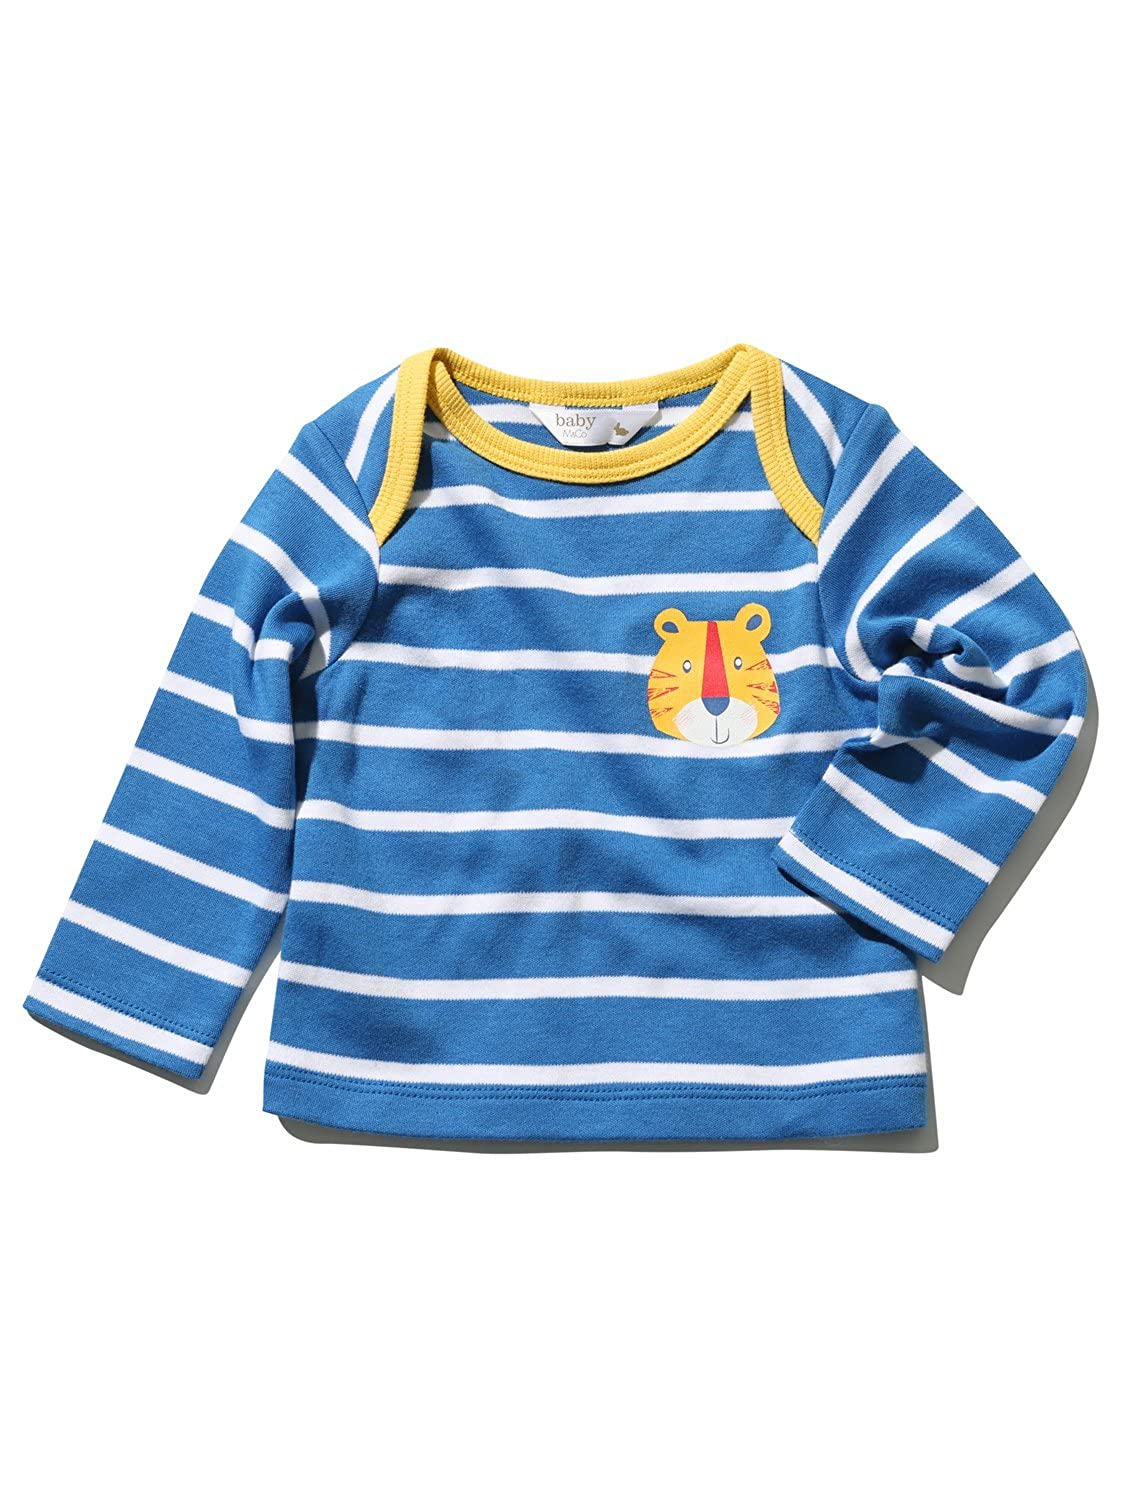 M&Co Newborn Boy 100% Cotton Blue White Stripe Long Sleeve Tiger Print Envelope Neck T-Shirt